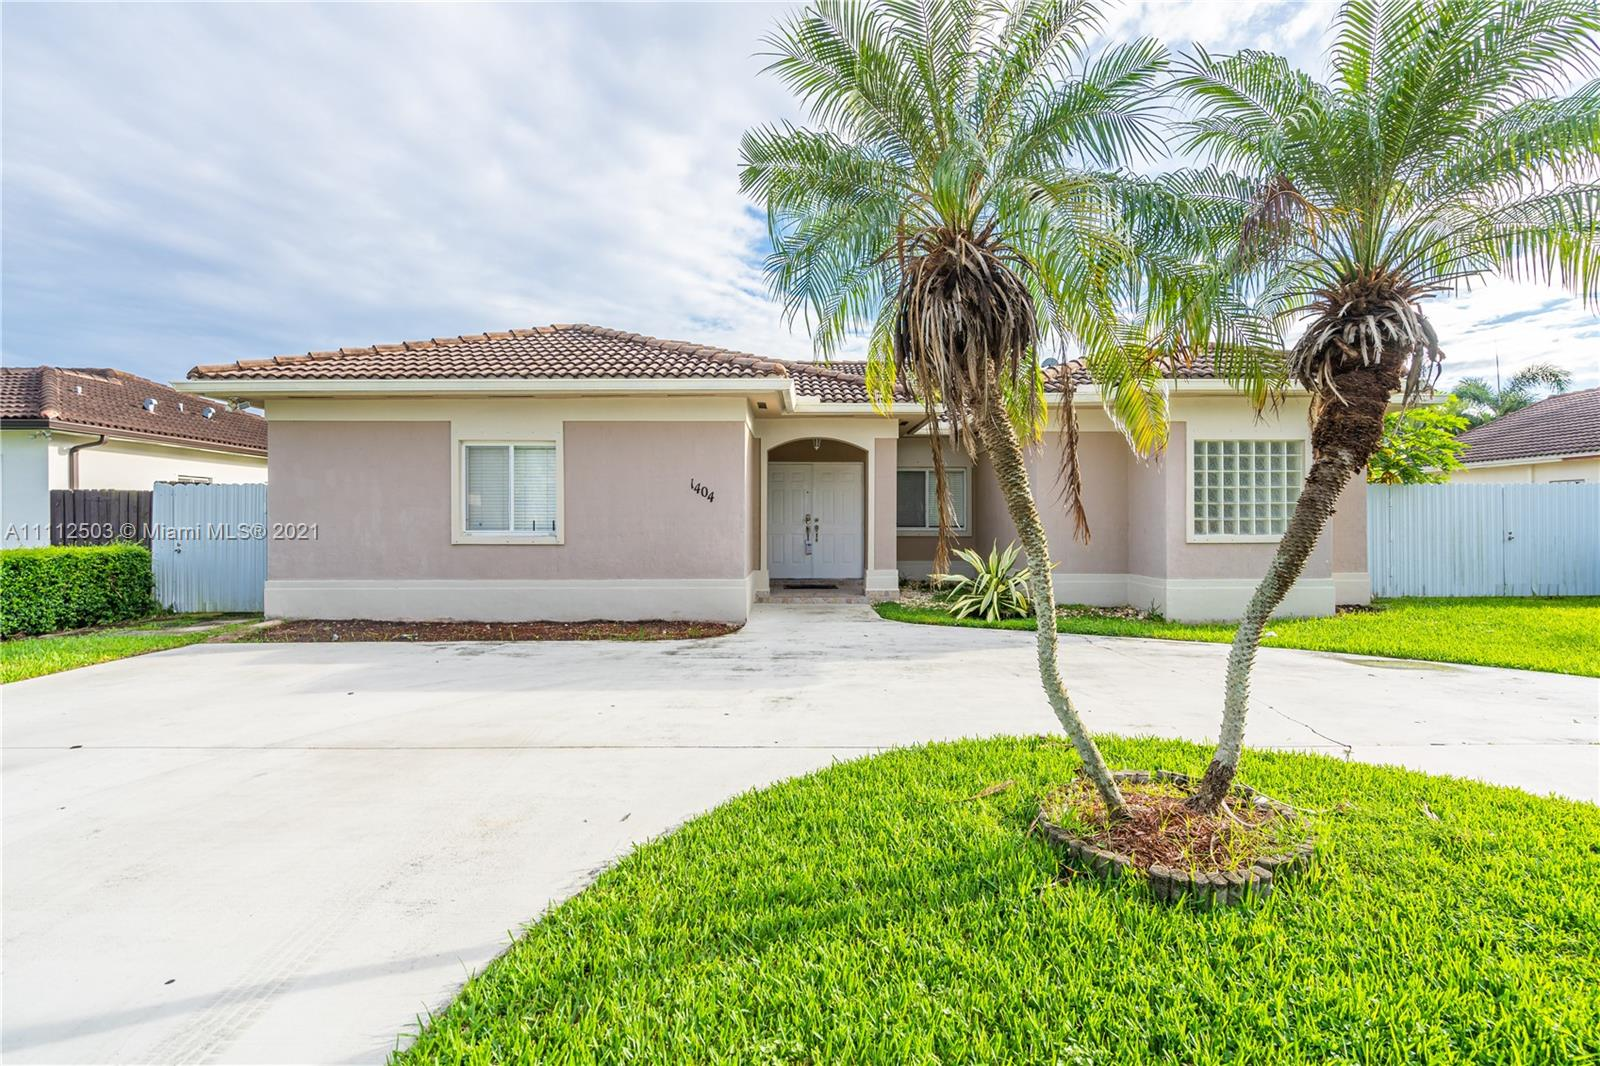 Single Family Home,For Sale,1404 SE 5th St, Homestead, Florida 33033,Brickell,realty,broker,condos near me